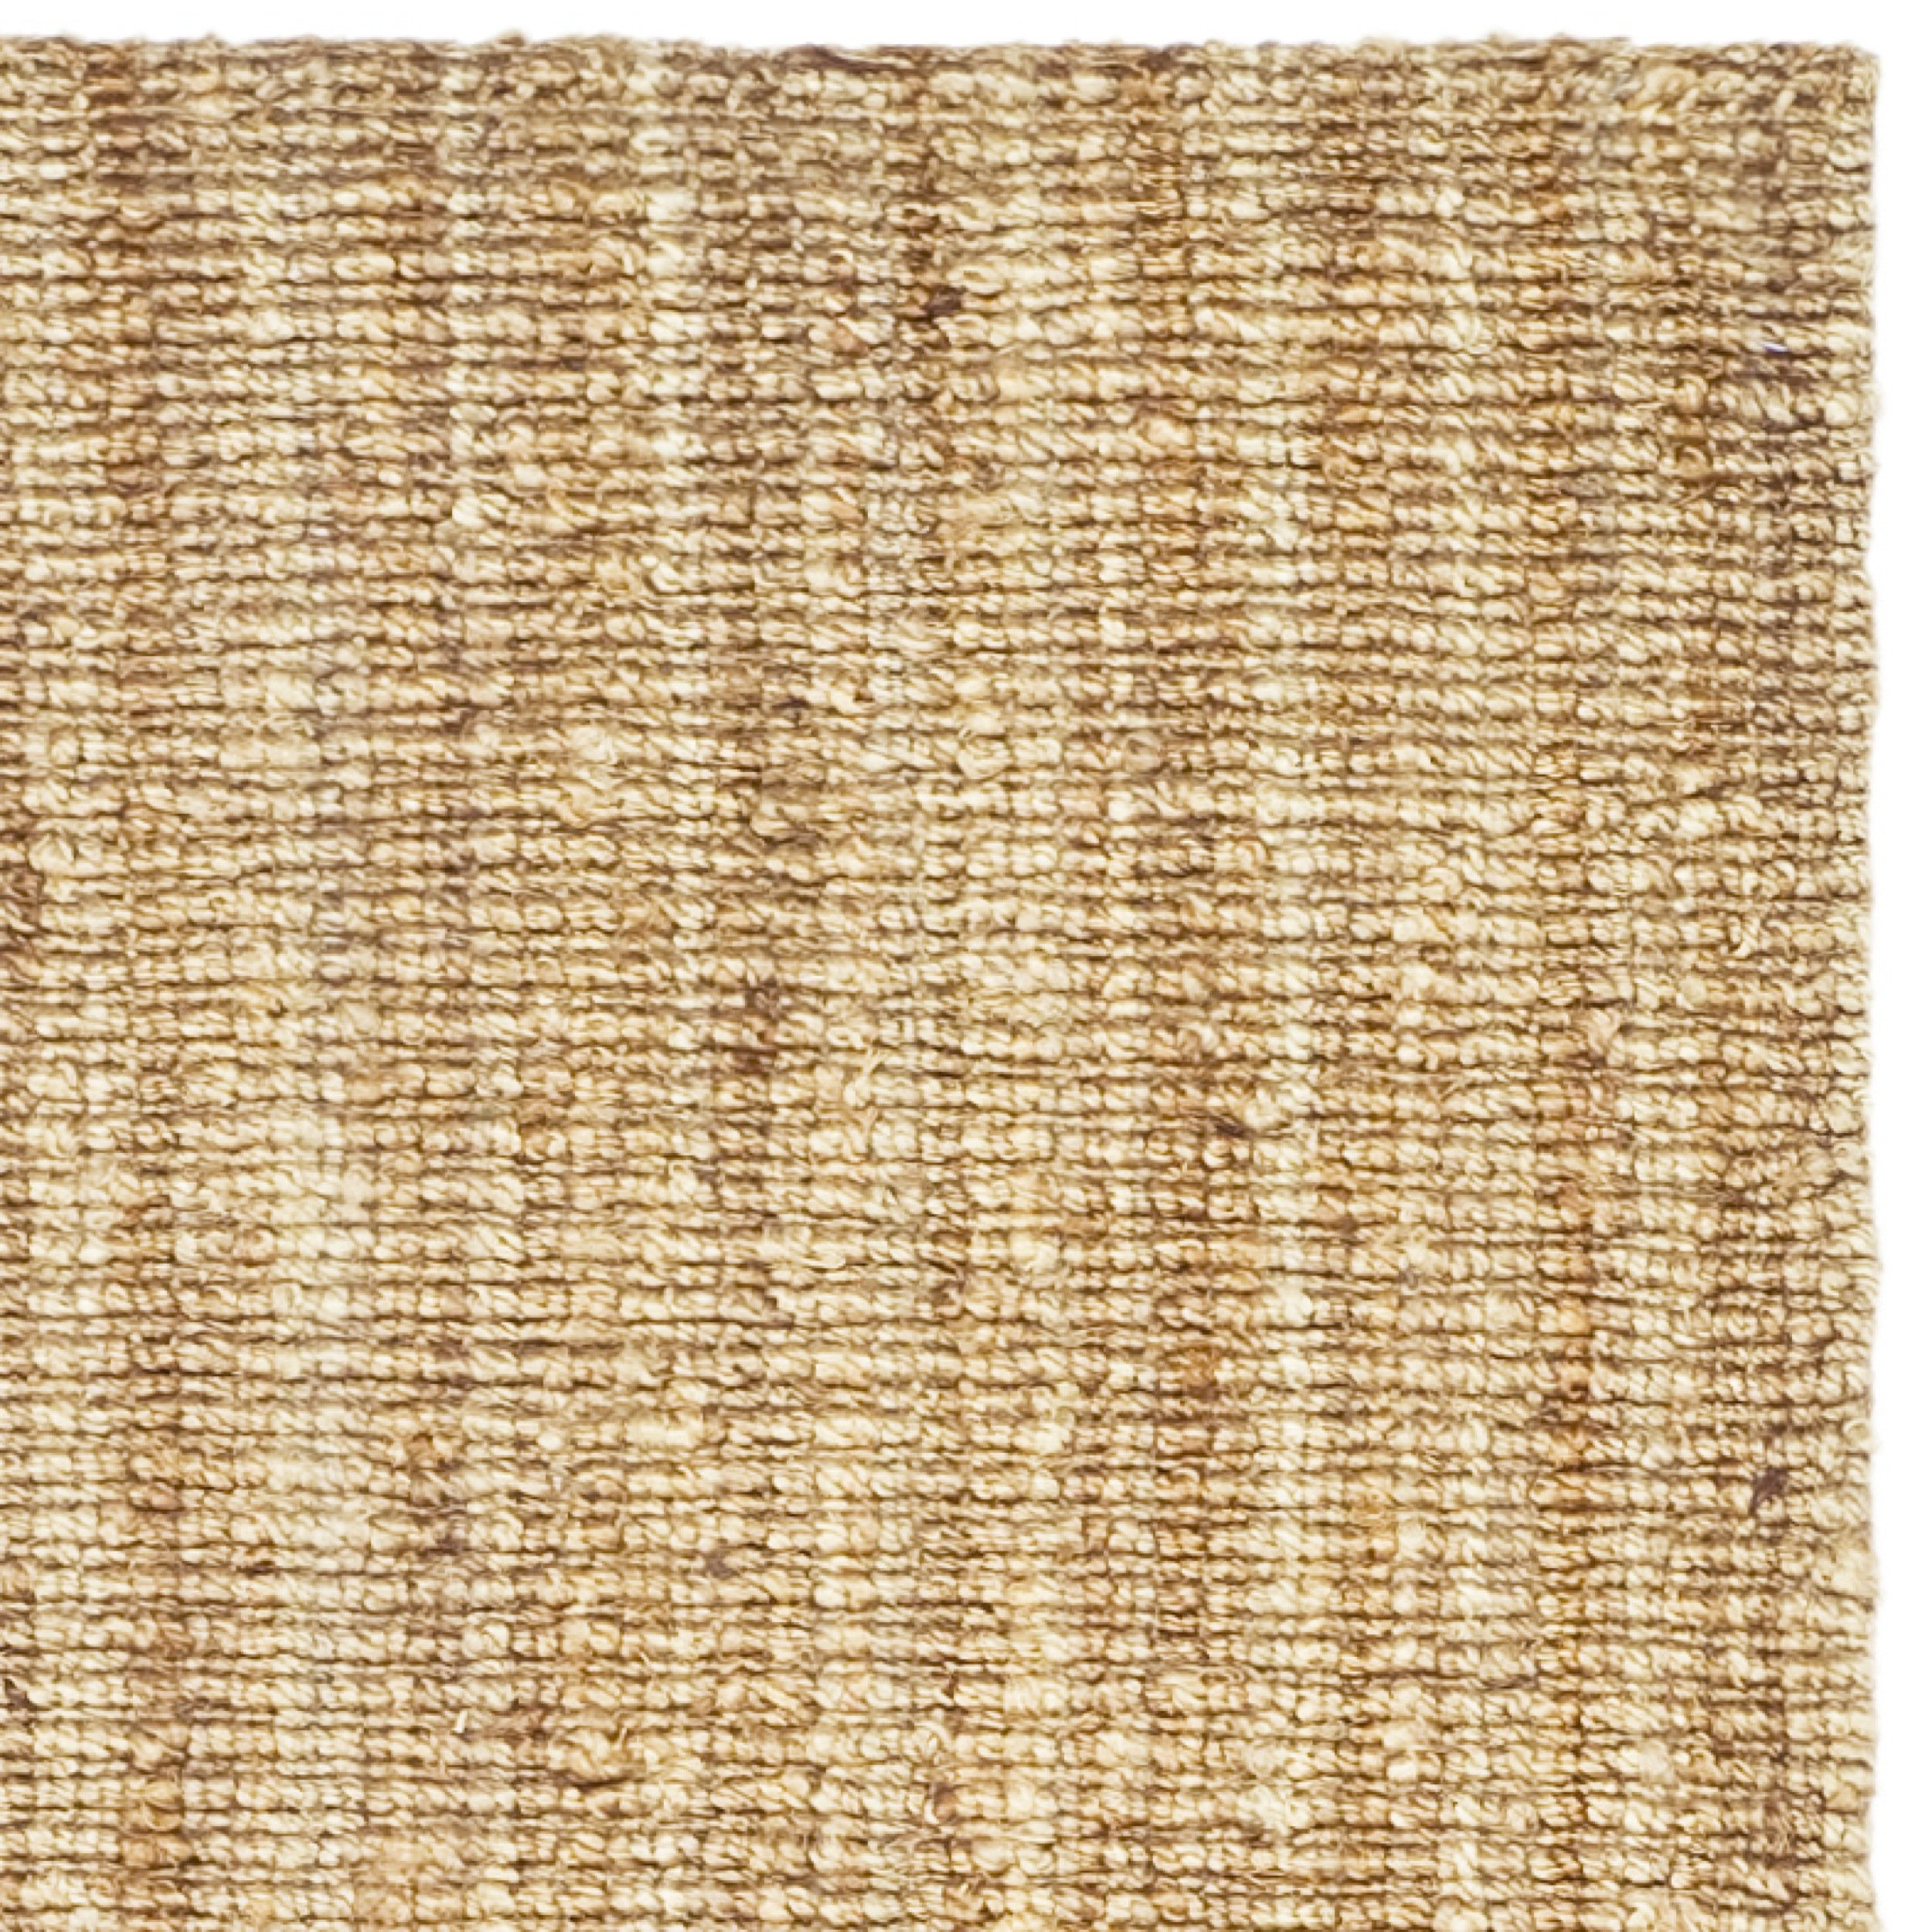 Safavieh Natural Fiber Collection NF447A Hand Woven Natural Jute Runner (2' x 6') by Safavieh (Image #3)